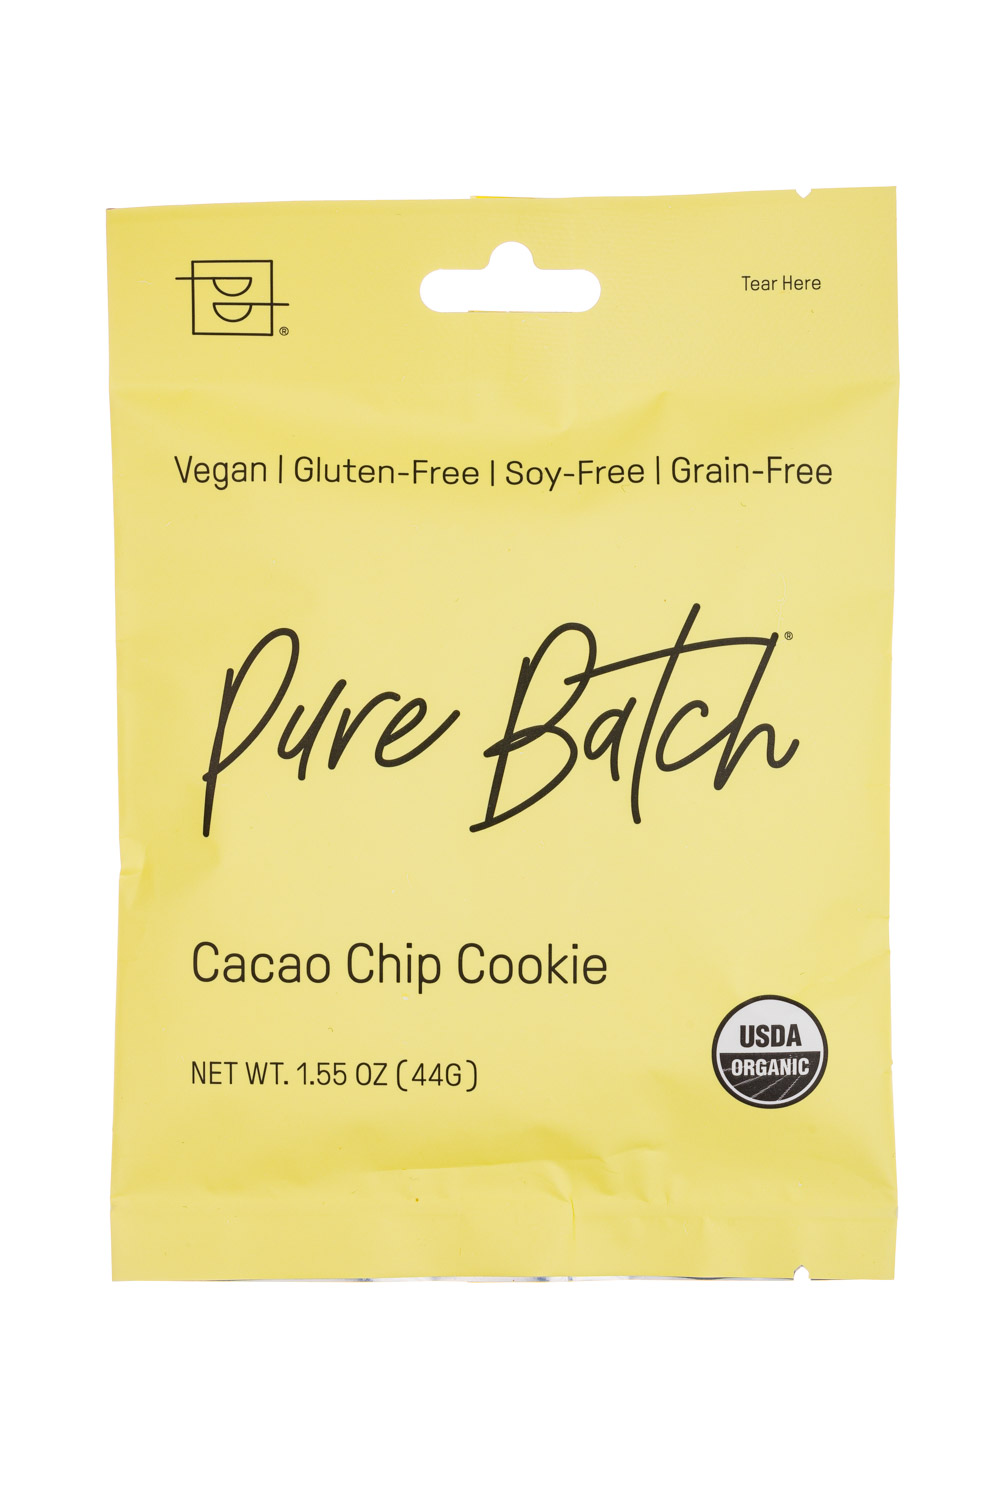 Cacao Chip Cookie